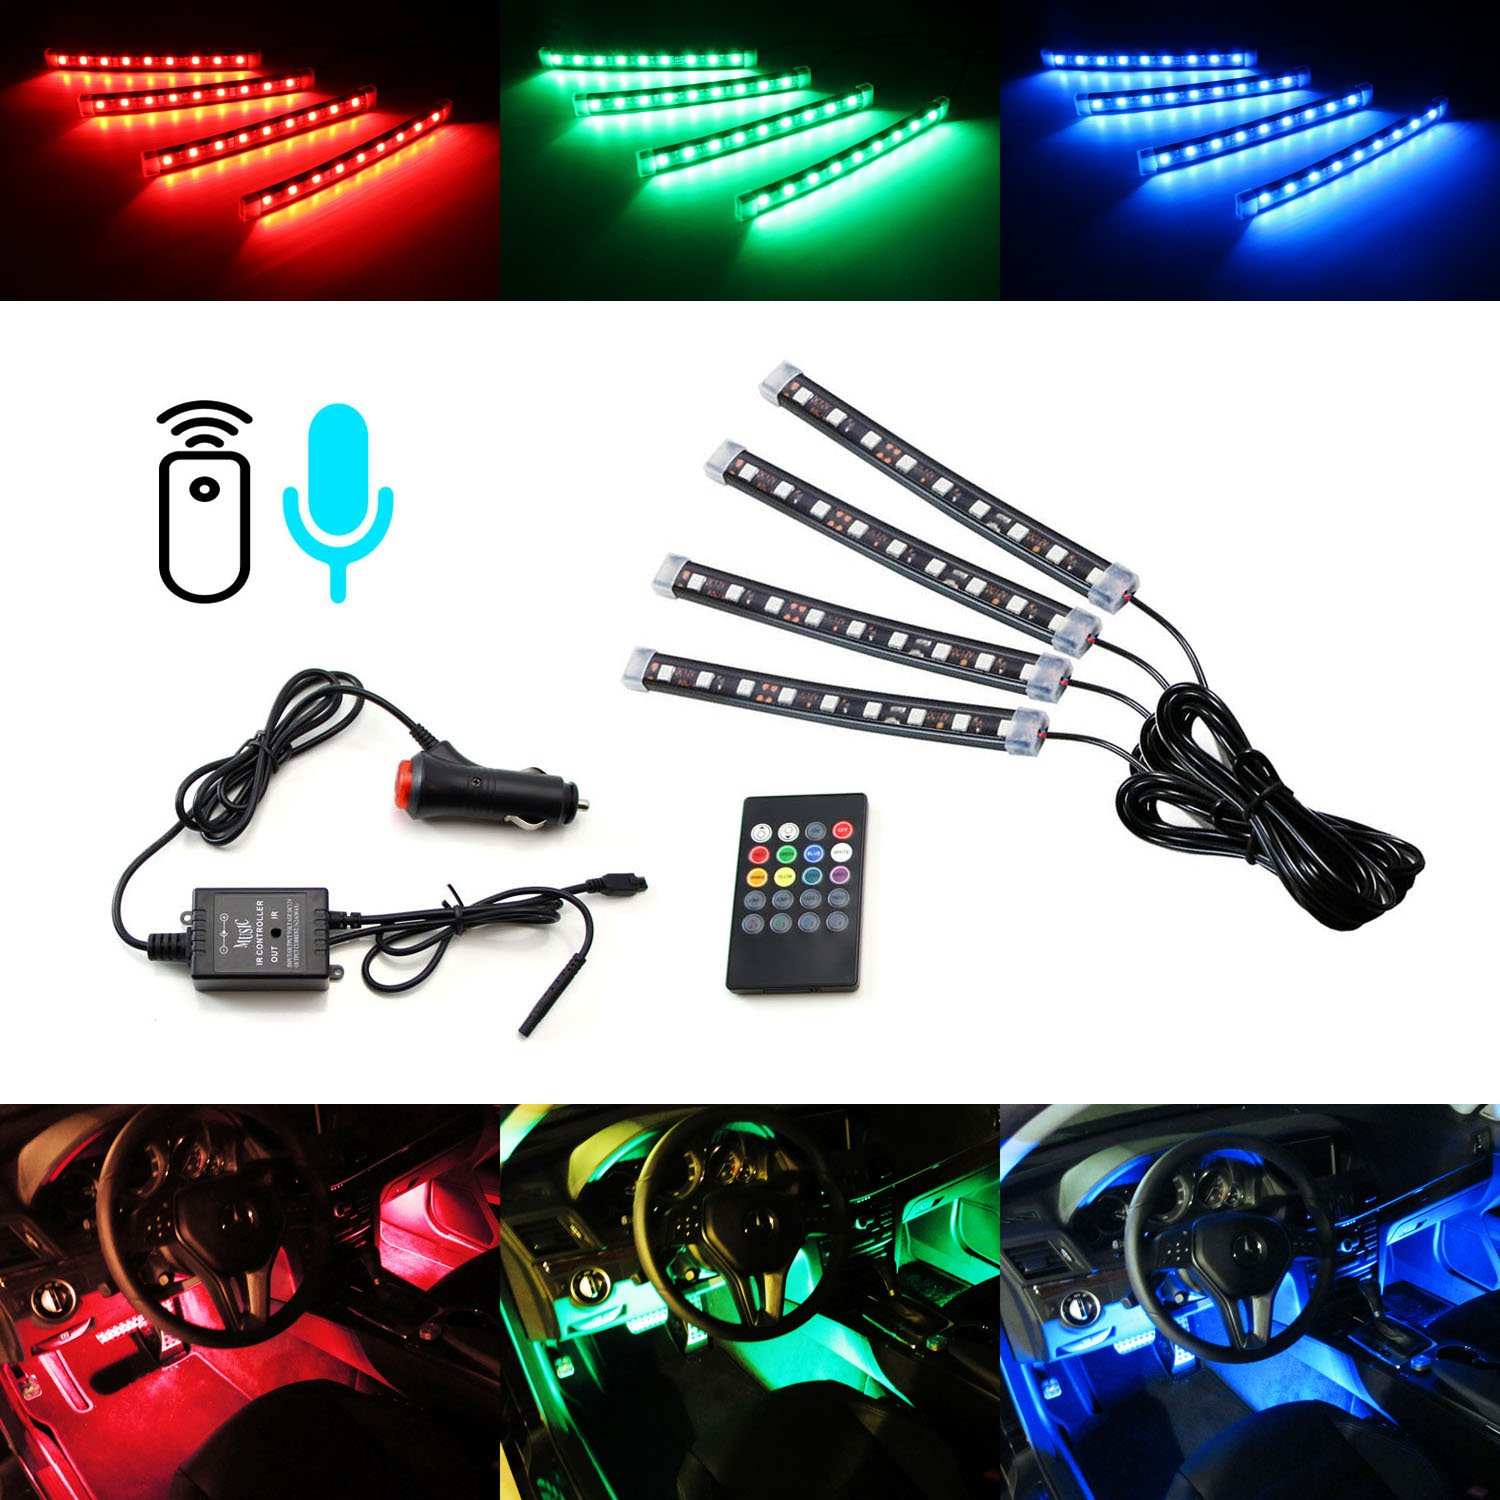 Ijdmtoy 4pc 6 36 Smd 7 Color Rgb Led Knight Rider Sound Subaru Wrx Interior Illumination Wiring Active Lighting Kit W Wireless Control For Car Suv Truck Motorcycle Bike Atv